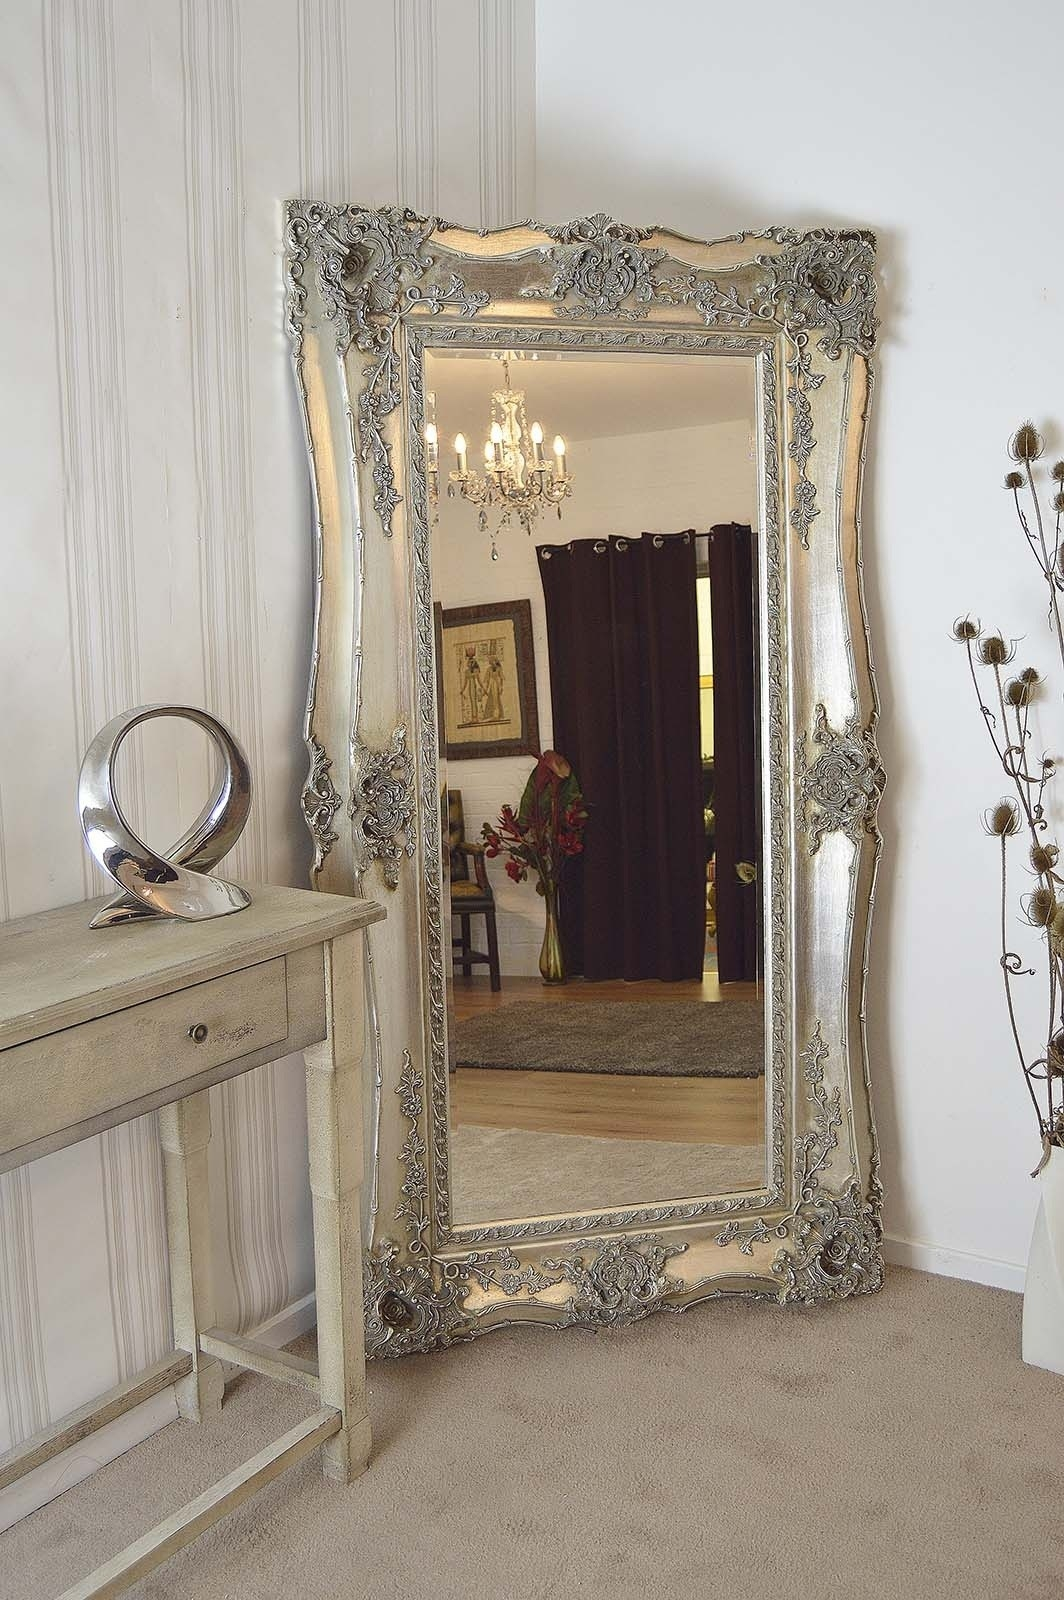 Ornate Full Length Wall Mirror Mirror Design Ideas Within Ornate Wall Mirror (Image 8 of 15)